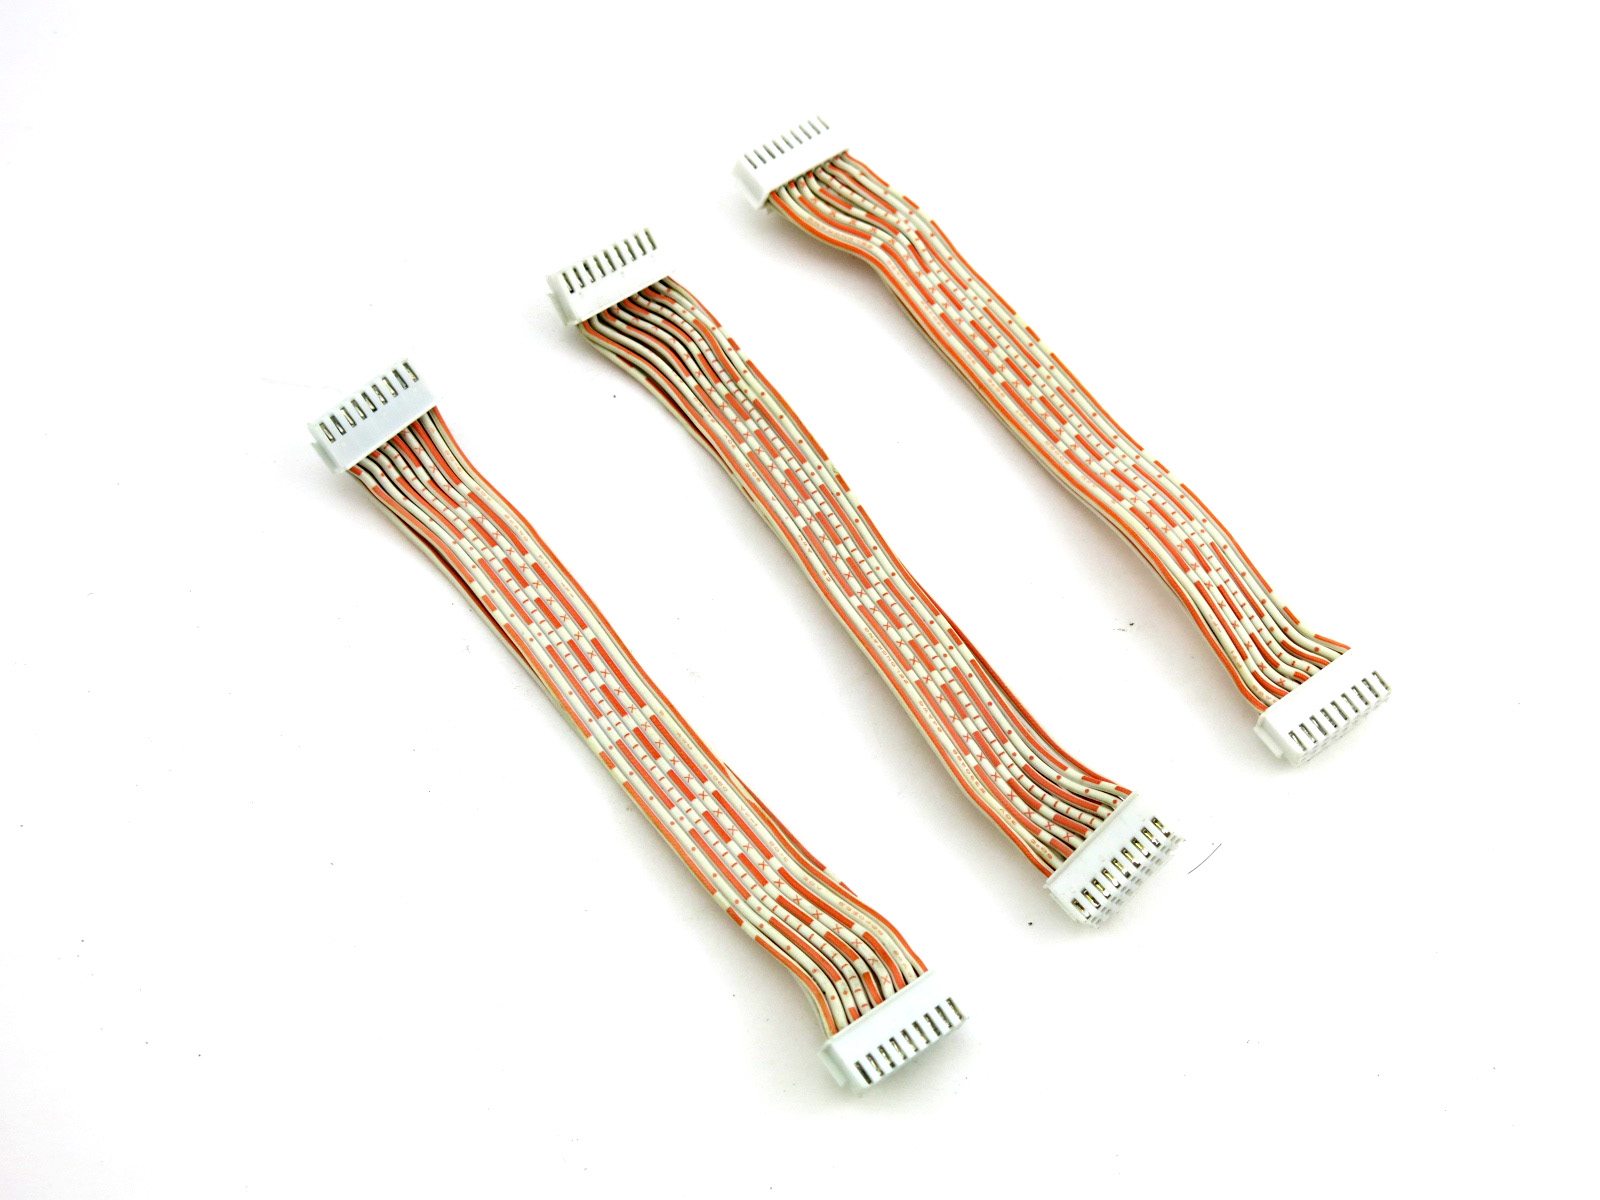 3 Pack Genuine 18-Pin Bitmain Antminer Hashboard to Controller Ribbon Data  Cable Cord